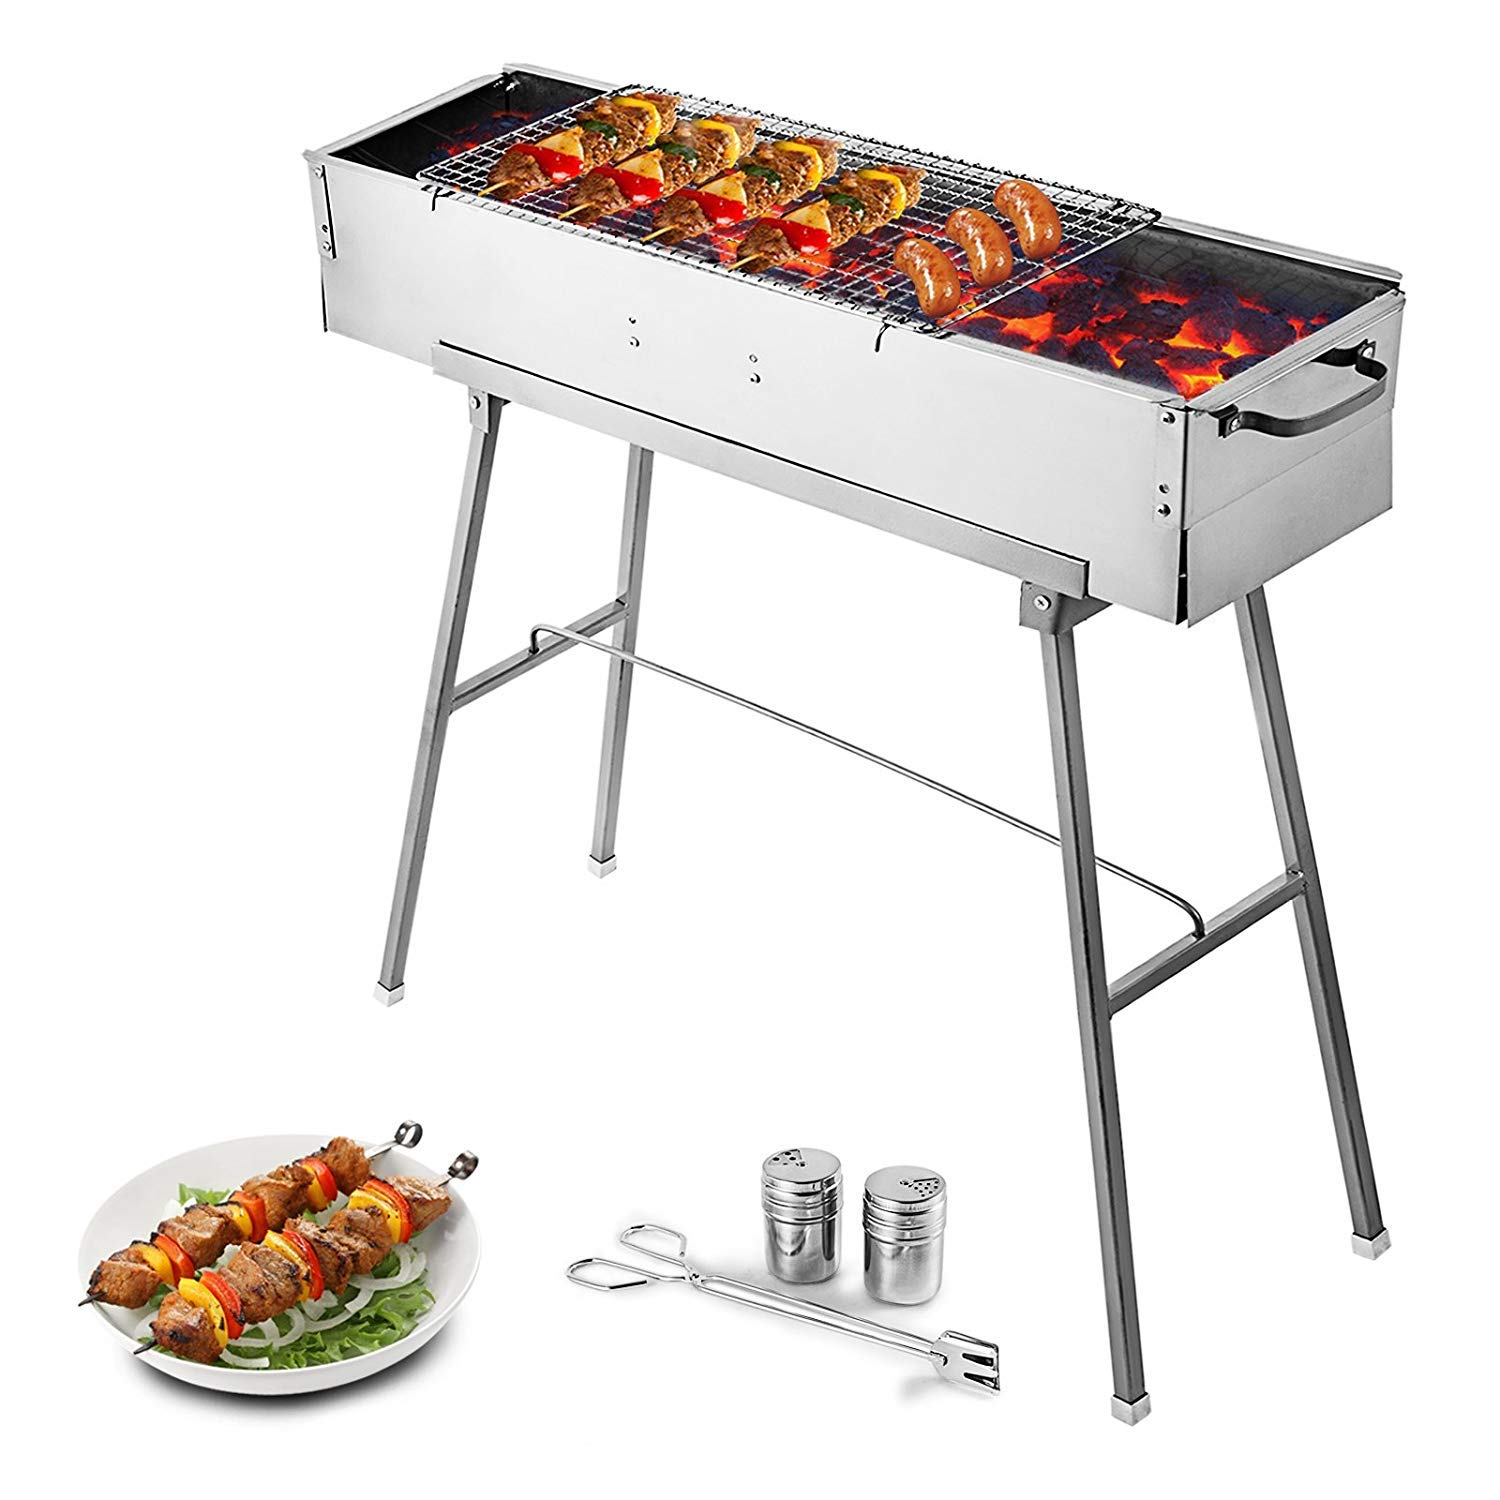 VEVOR Folded Portable Charcoal BBQ Grill 32'' X 8'' Stainless Steel Kebab Perfect for Outdoor Barbecue Camping by VEVOR